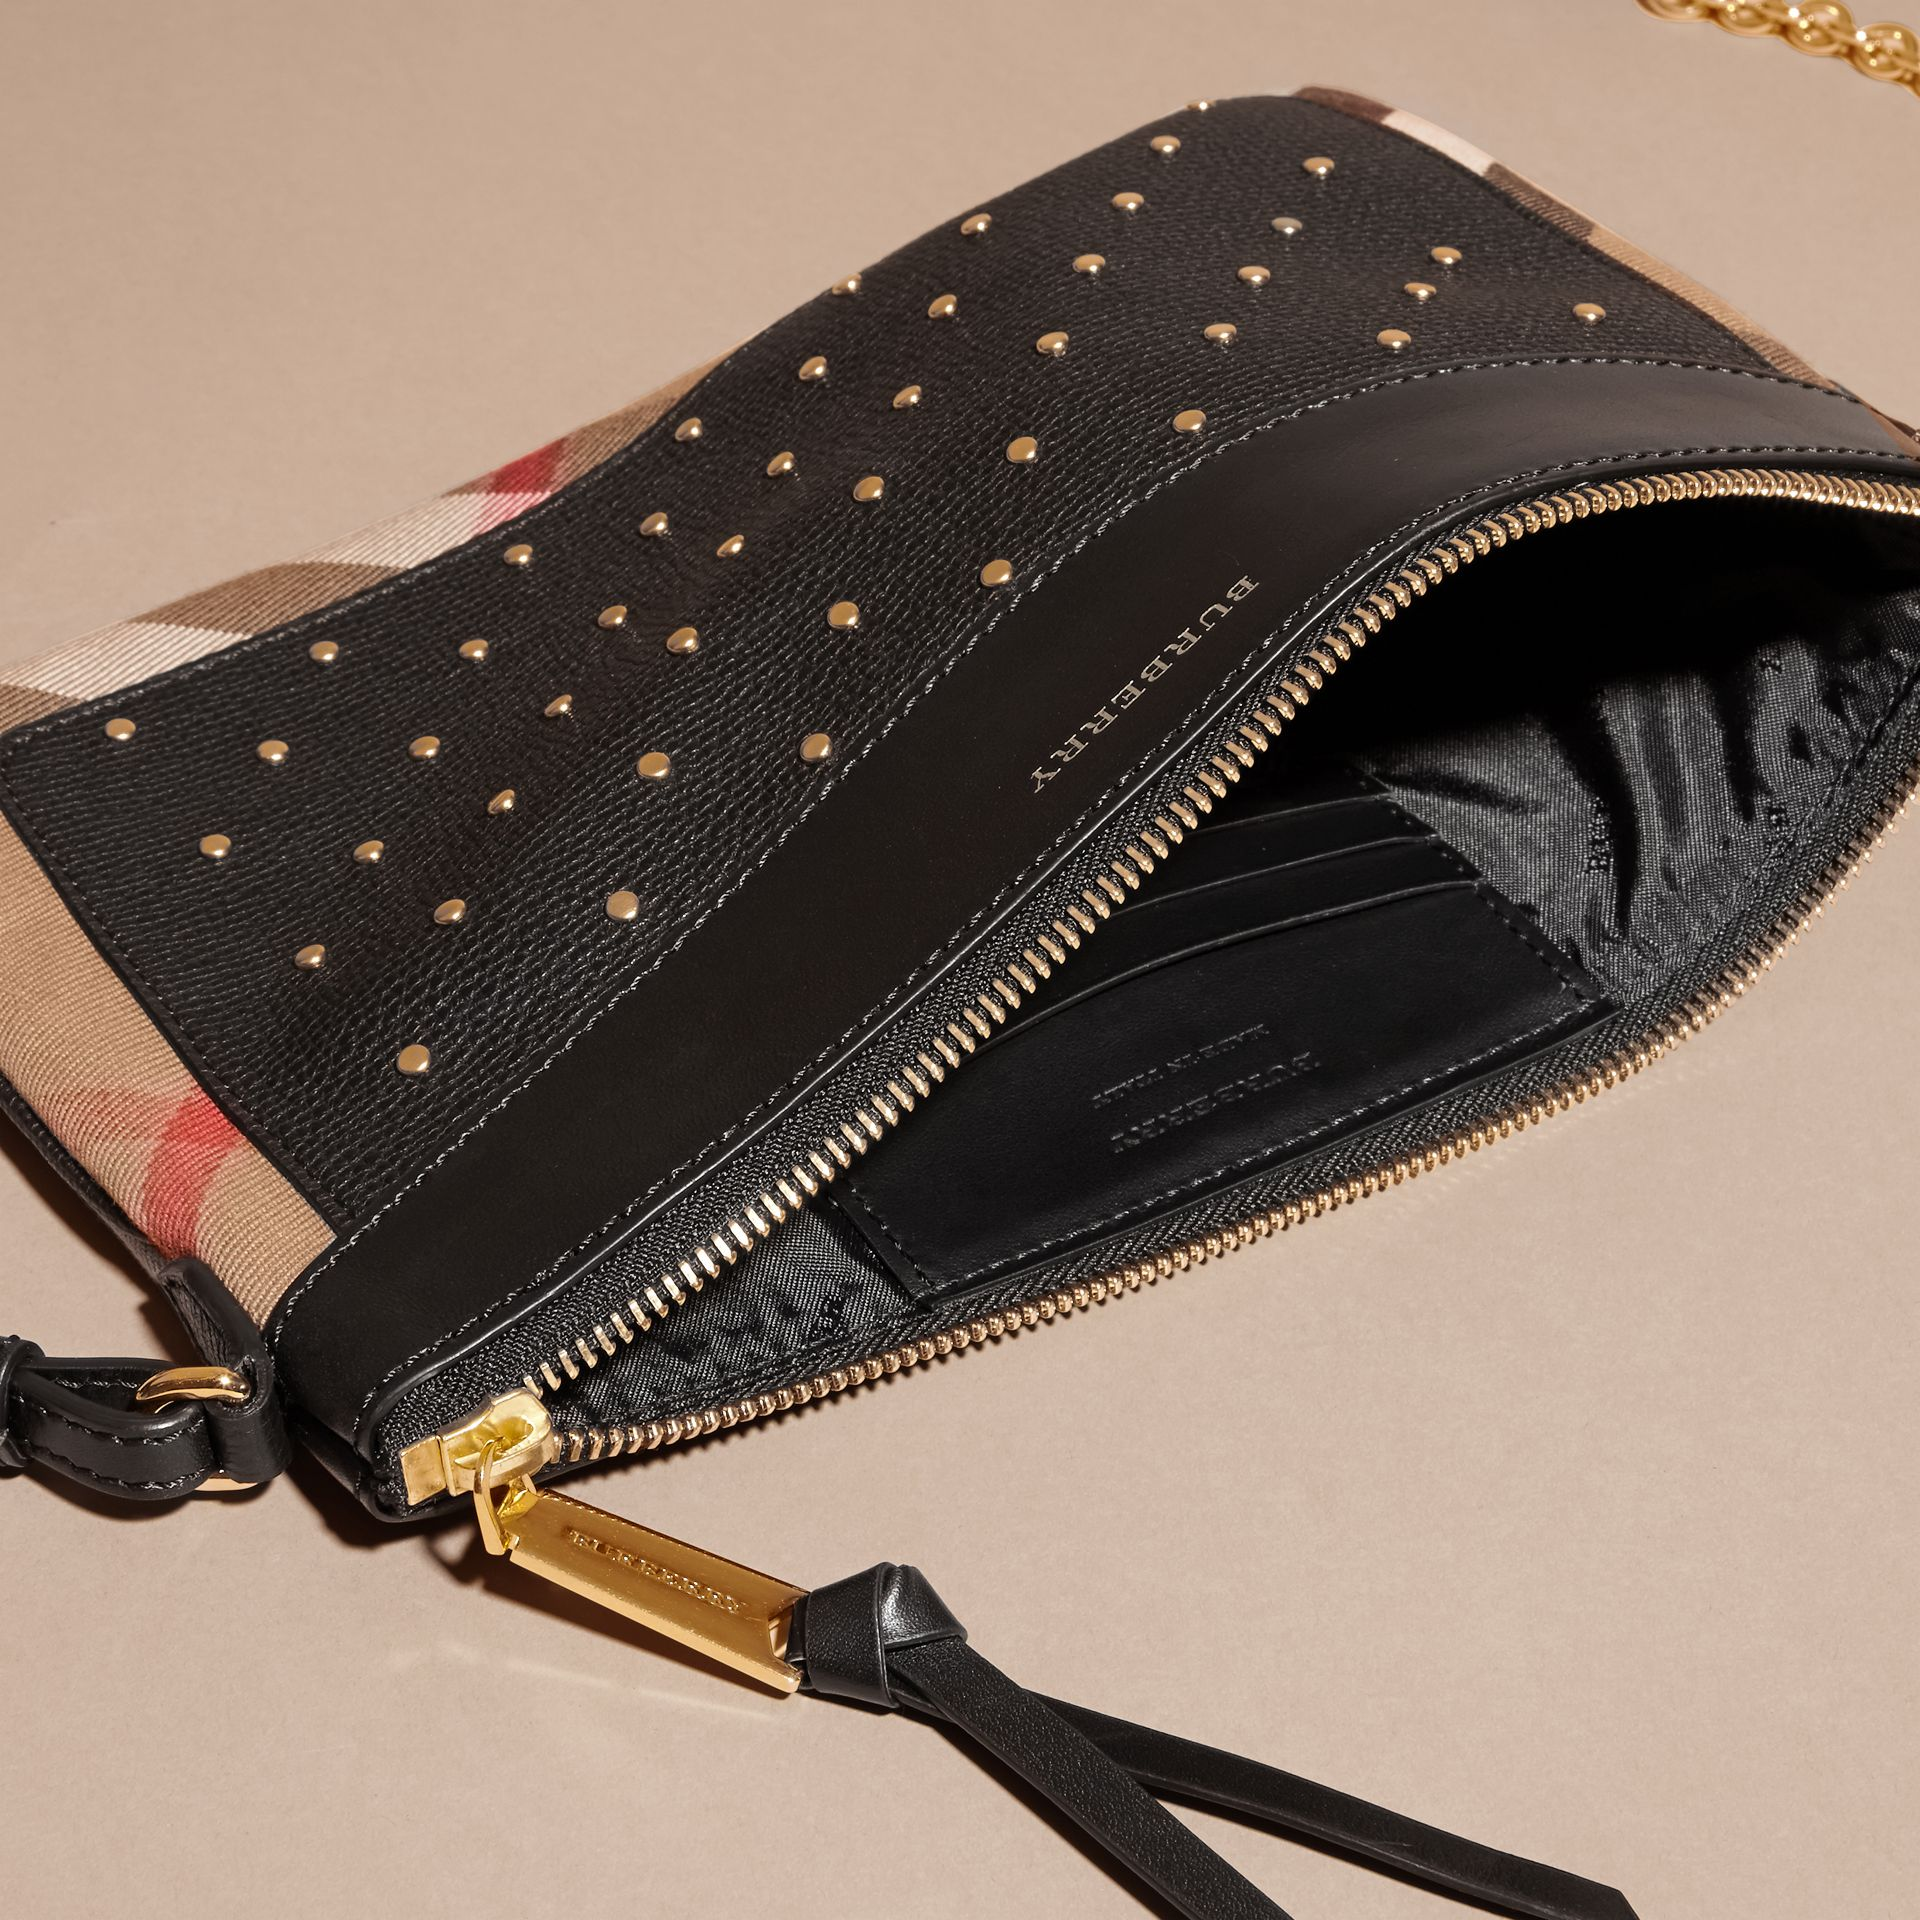 Riveted Leather and House Check Clutch Bag Black - gallery image 6